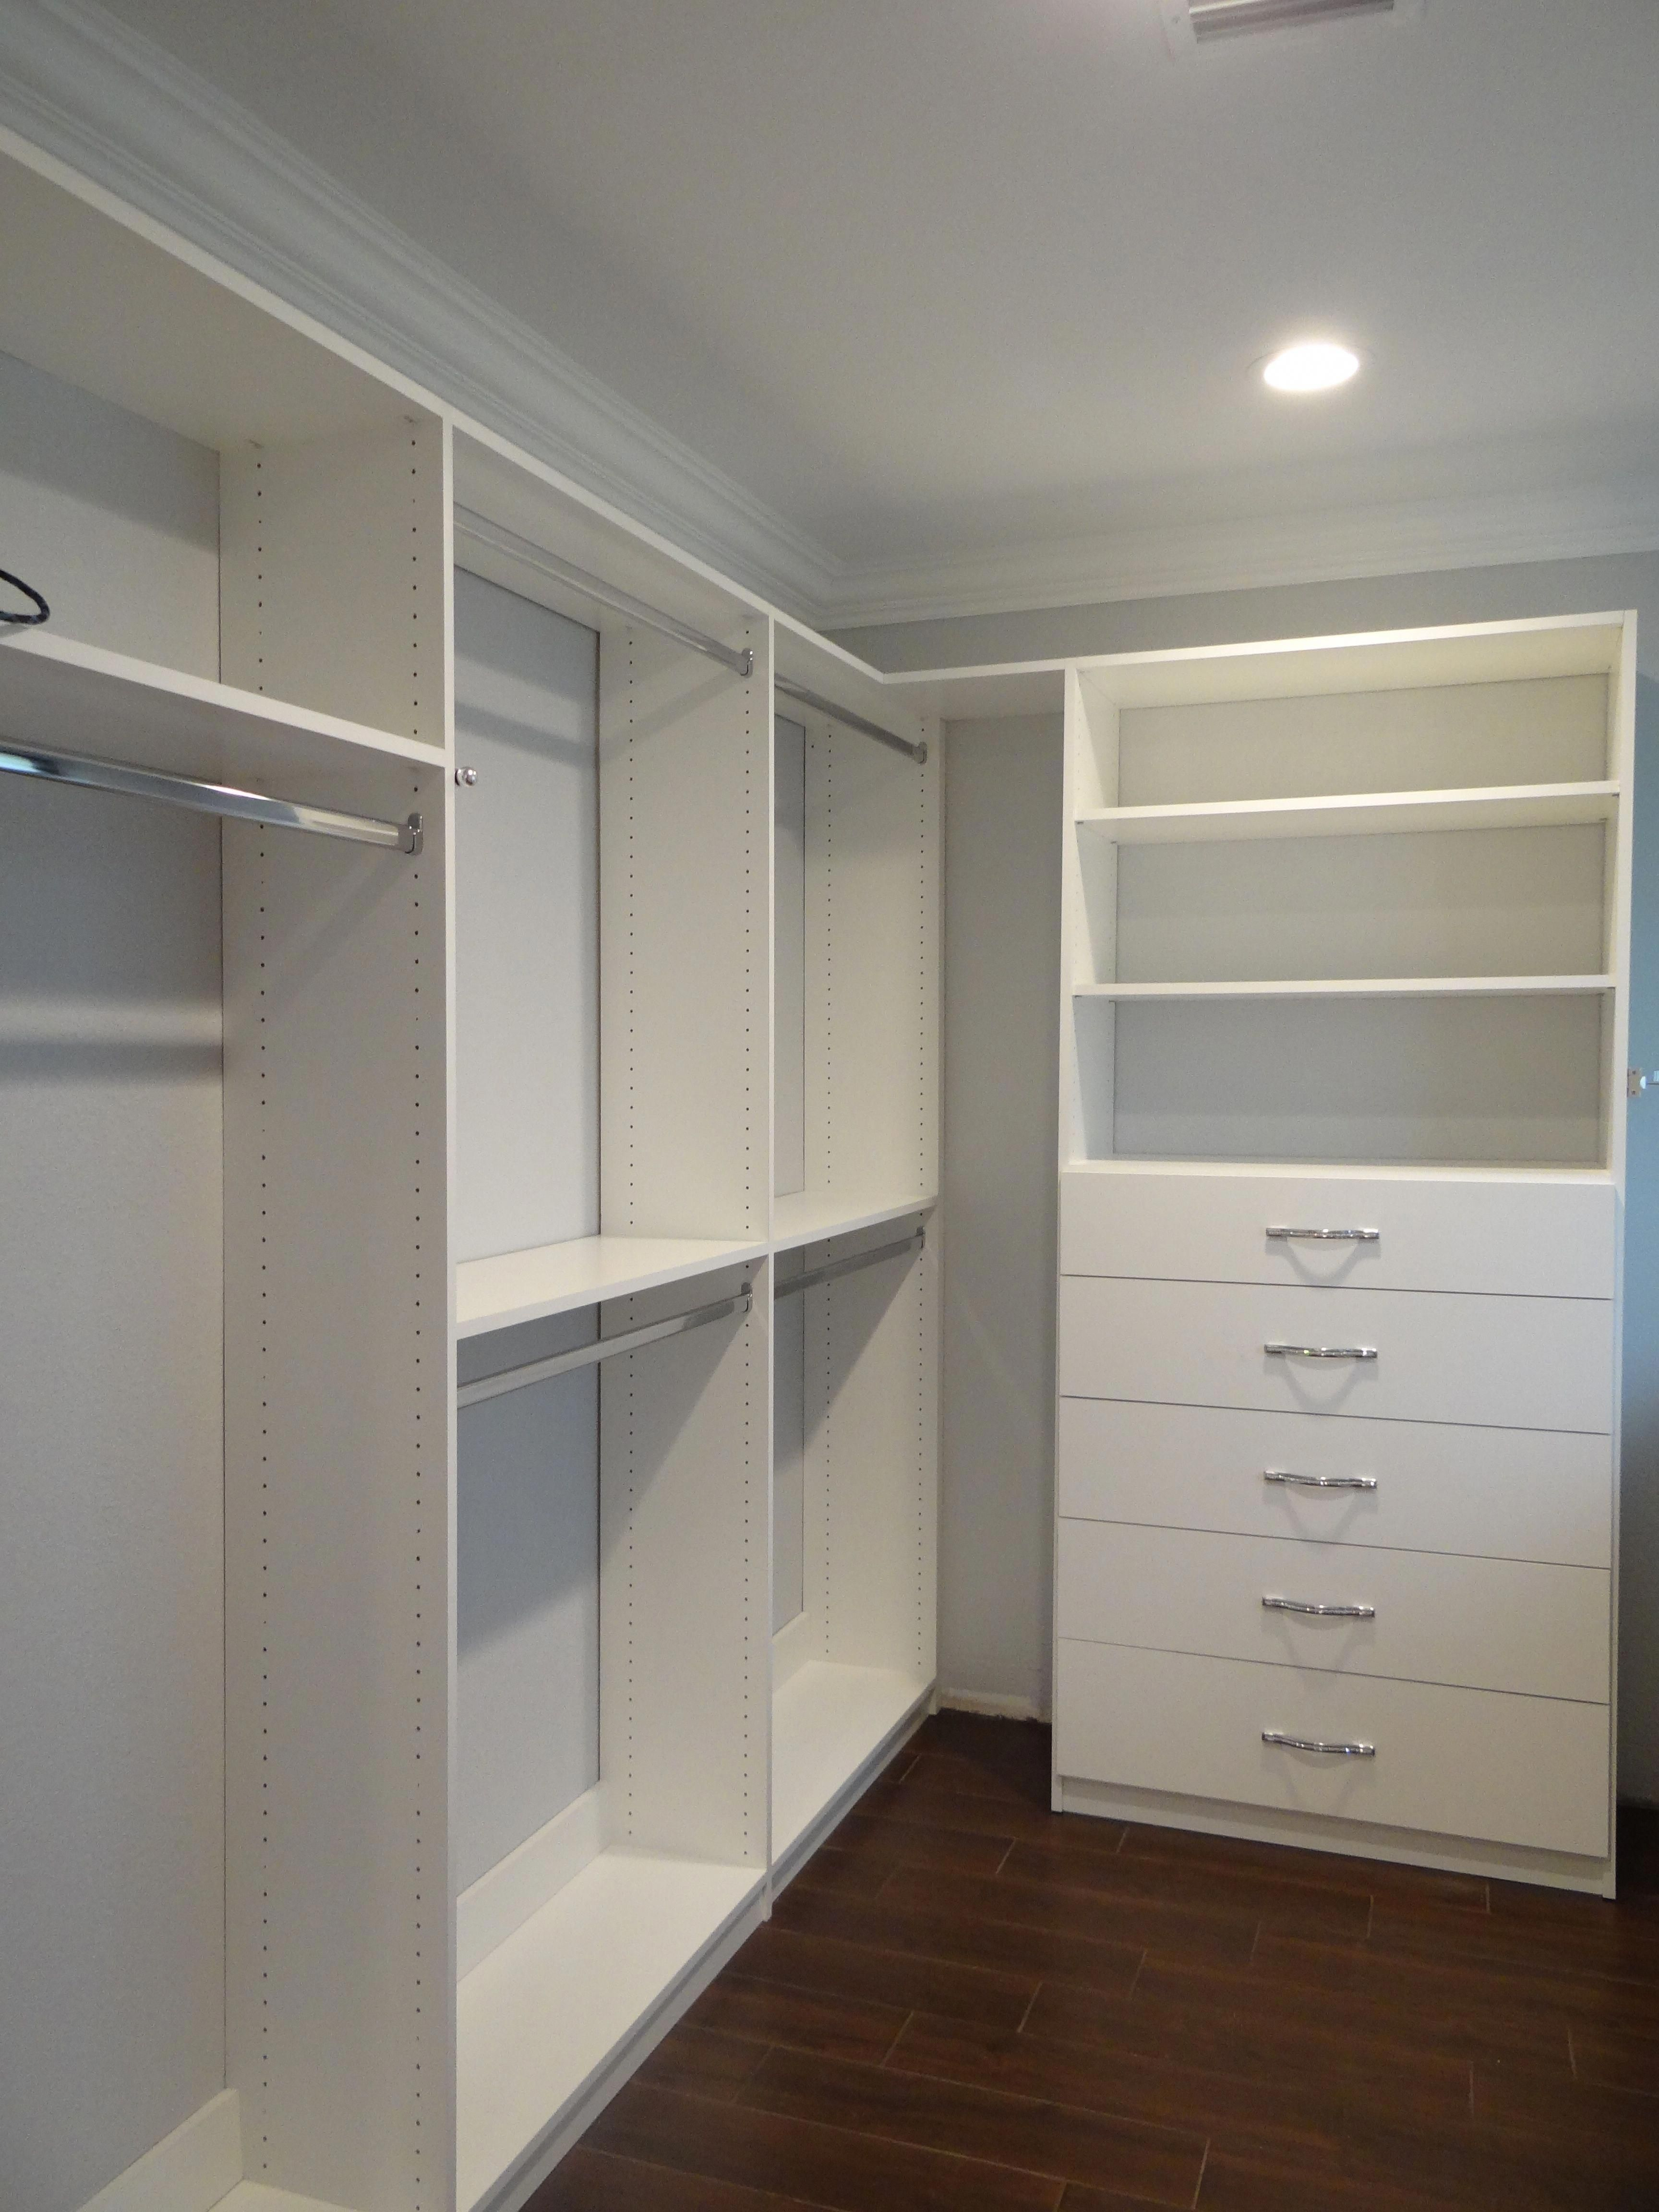 8 Functional And Stylish Wardrobes For A Room Painted Closet